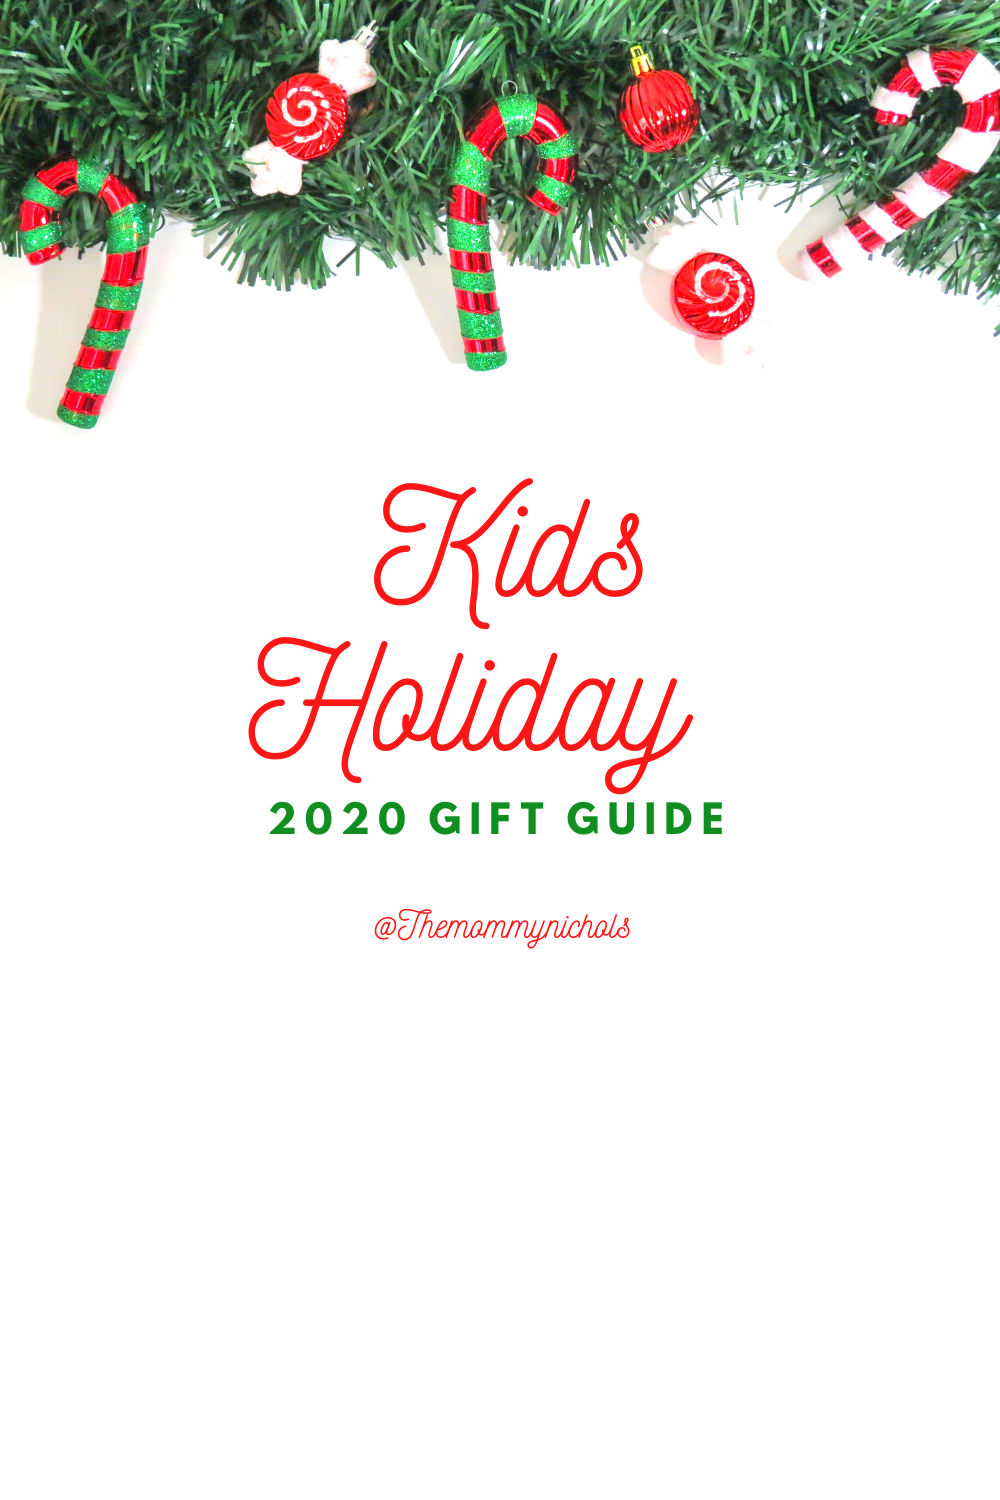 2020 Holiday Gift Guide- Kids